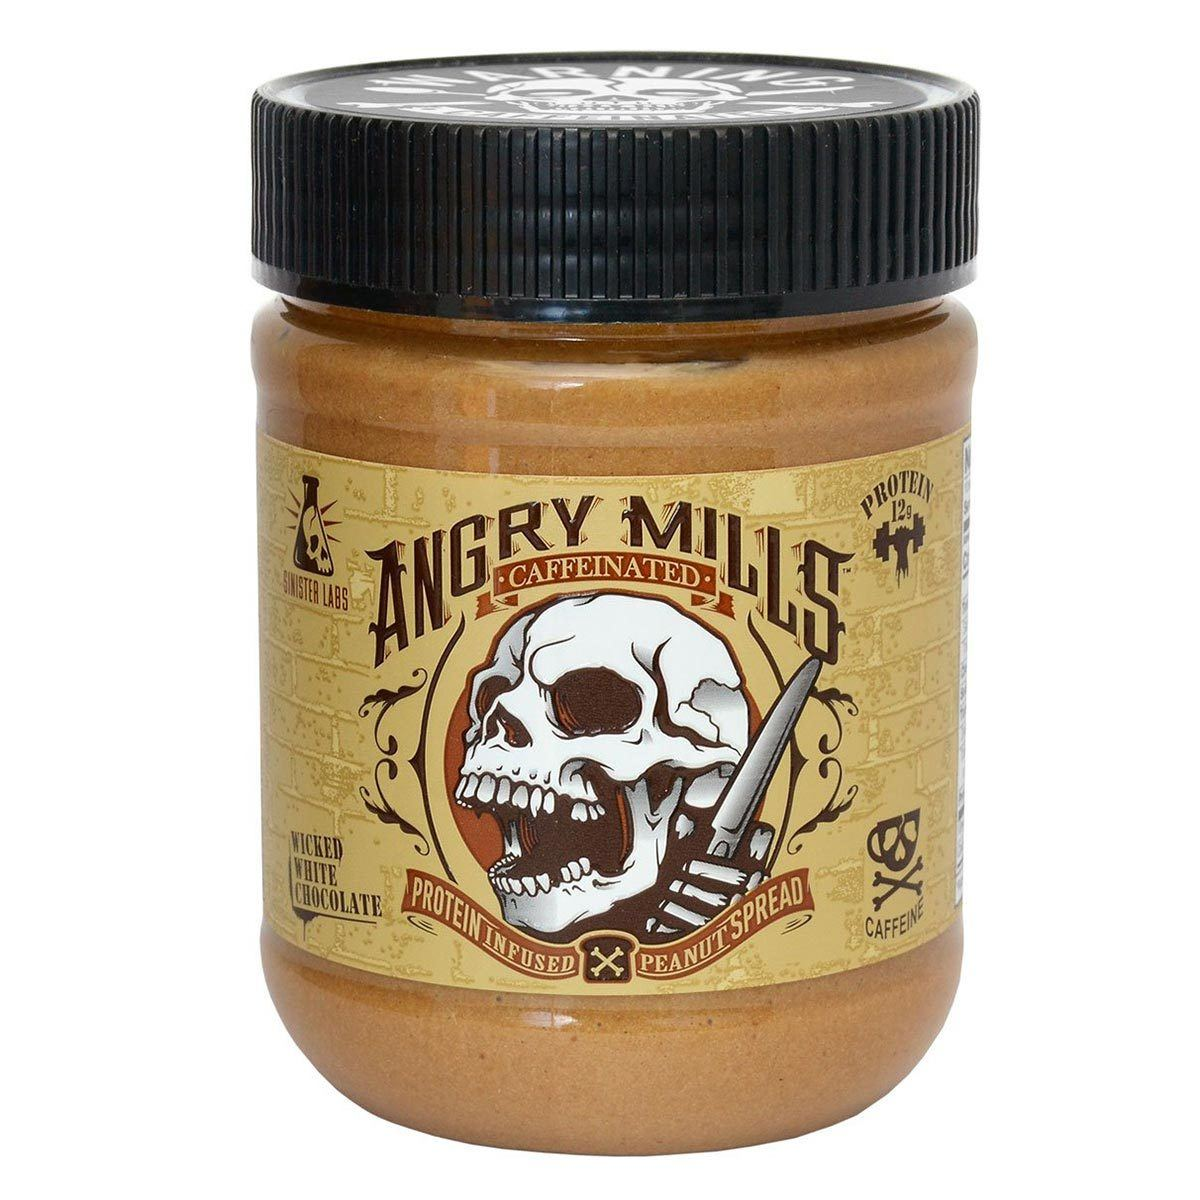 Sinister Labs Angry Mills Caffeinated Protein Infused Peanut Spread Wicked White Chocolate Foods & Snacks Sinister Labs  (1059326656555)